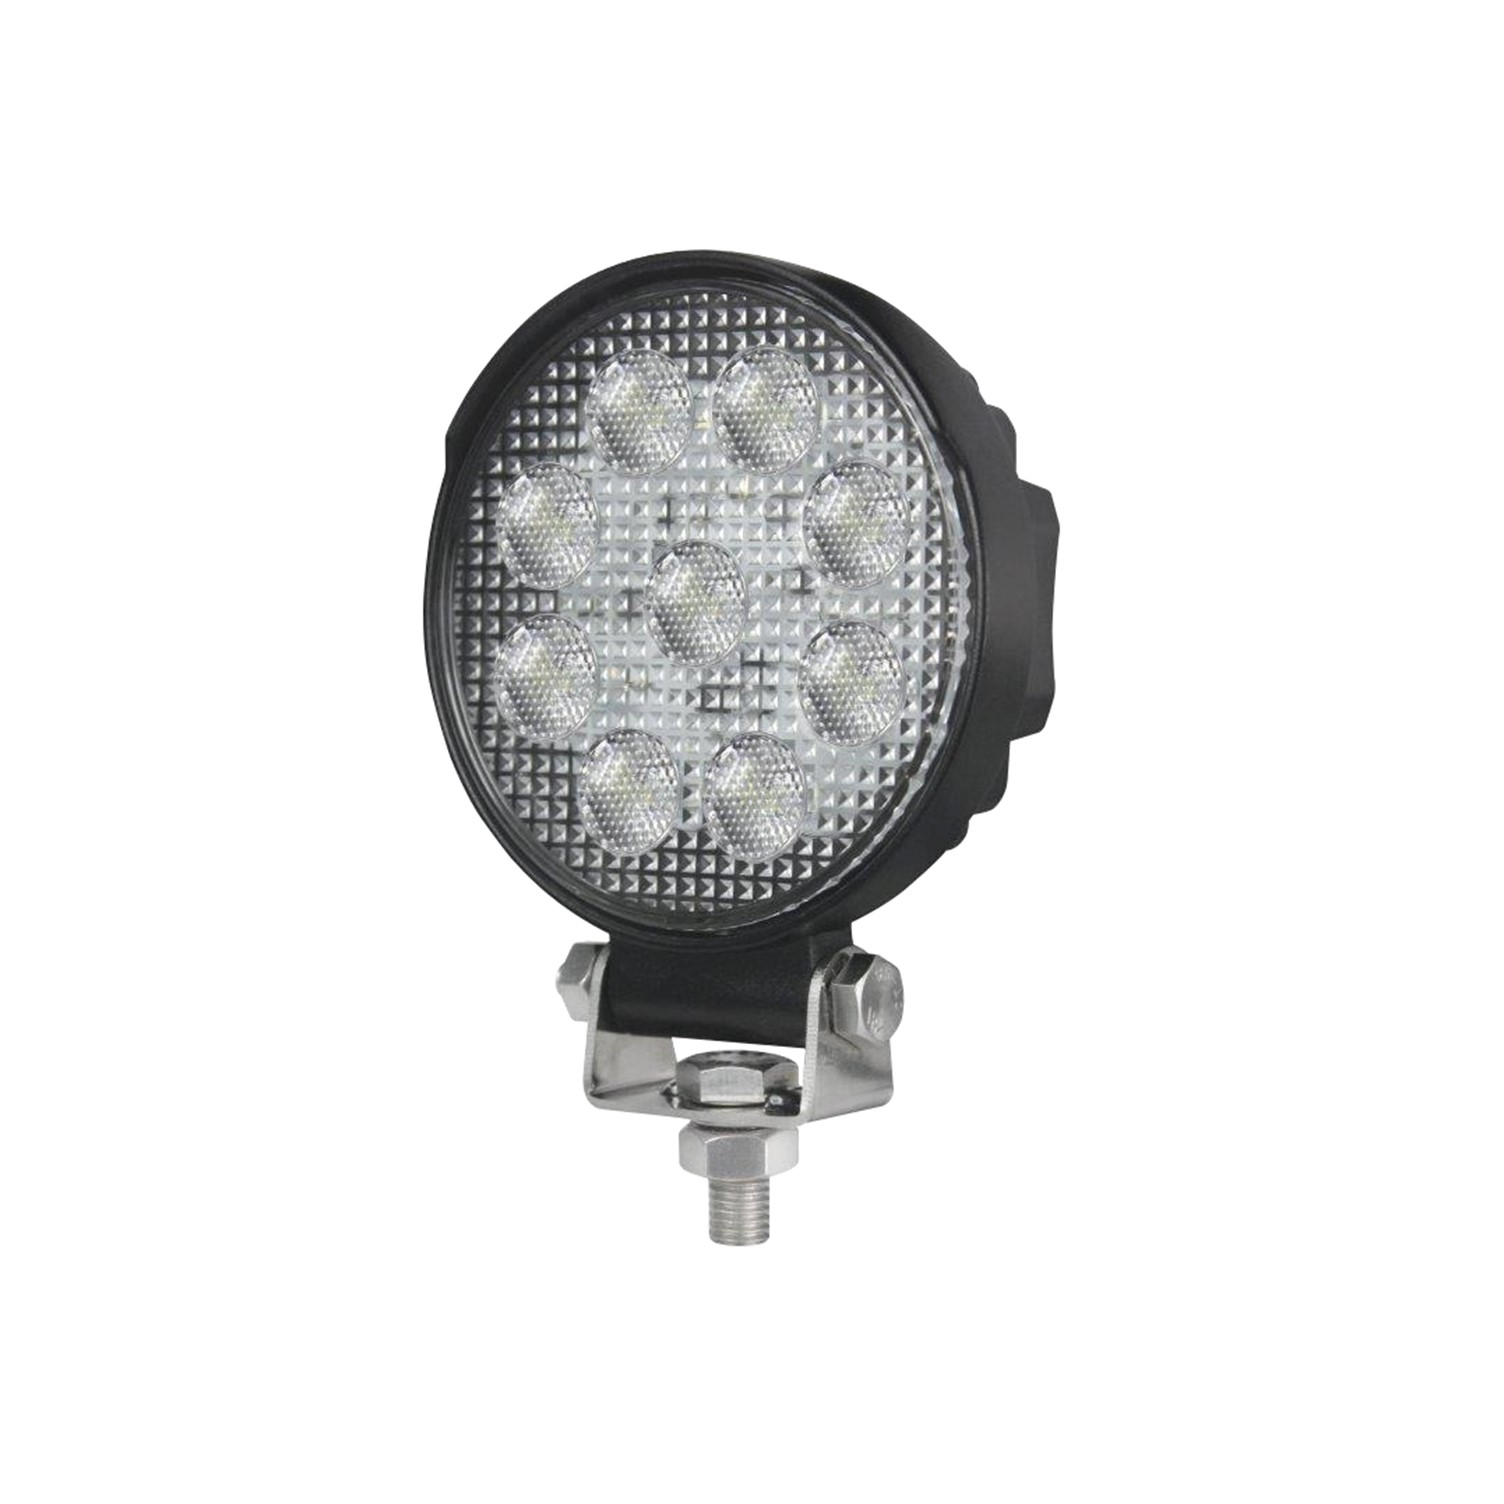 HELLA 357101012 ValueFit R1500 LED